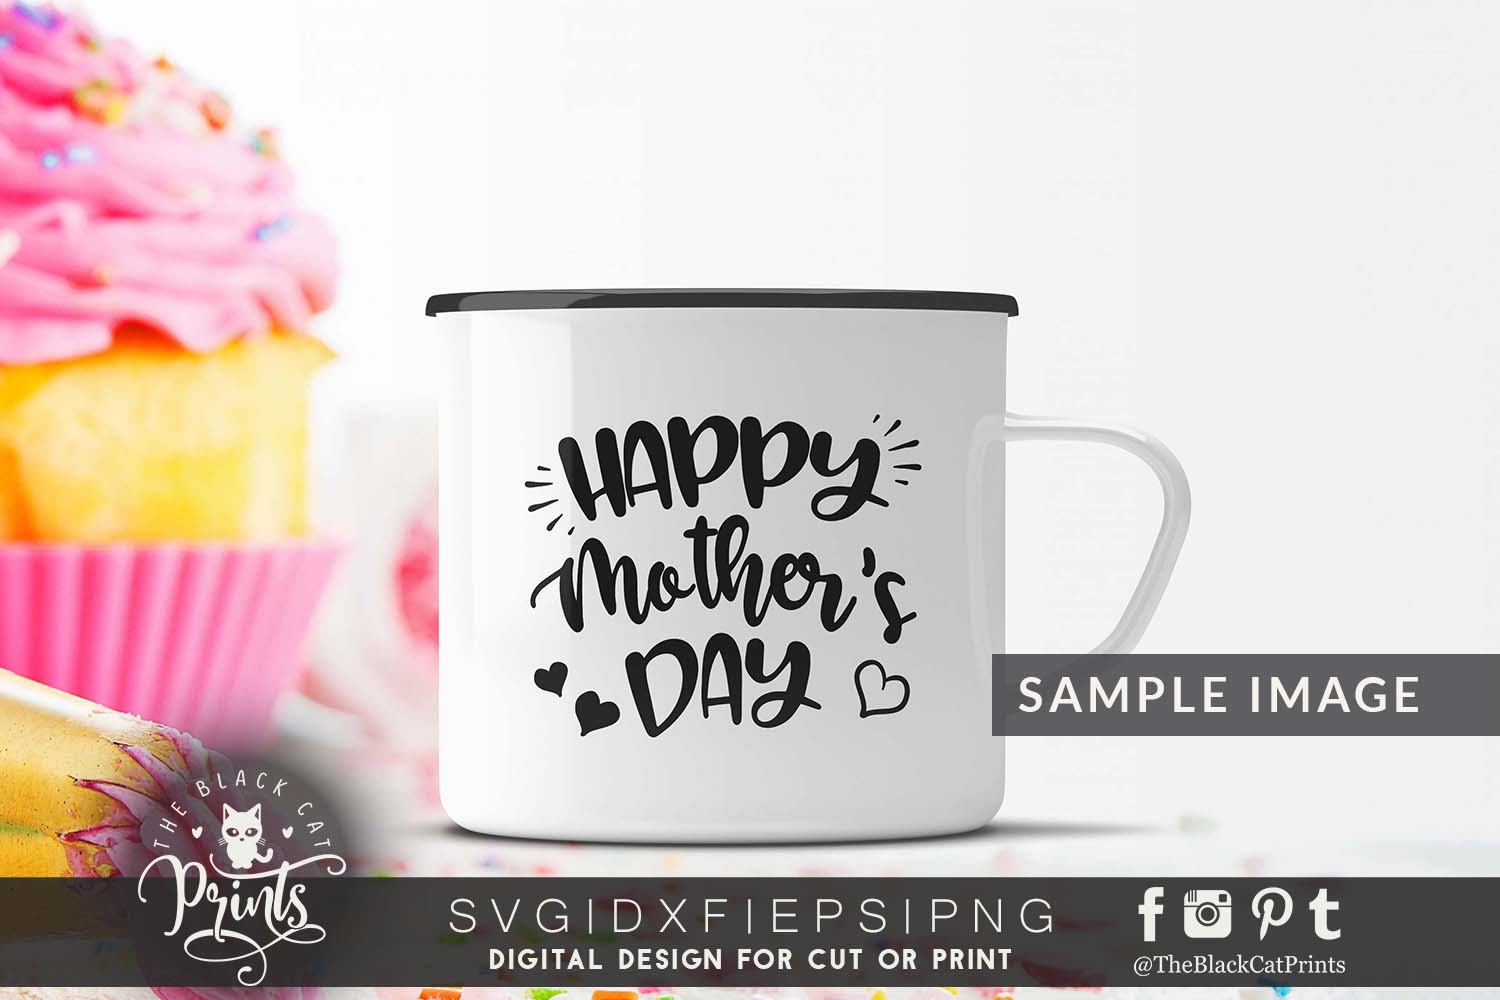 Happy mother's day SVG PNG EPS DXF, Mother svg cutting file example image 3